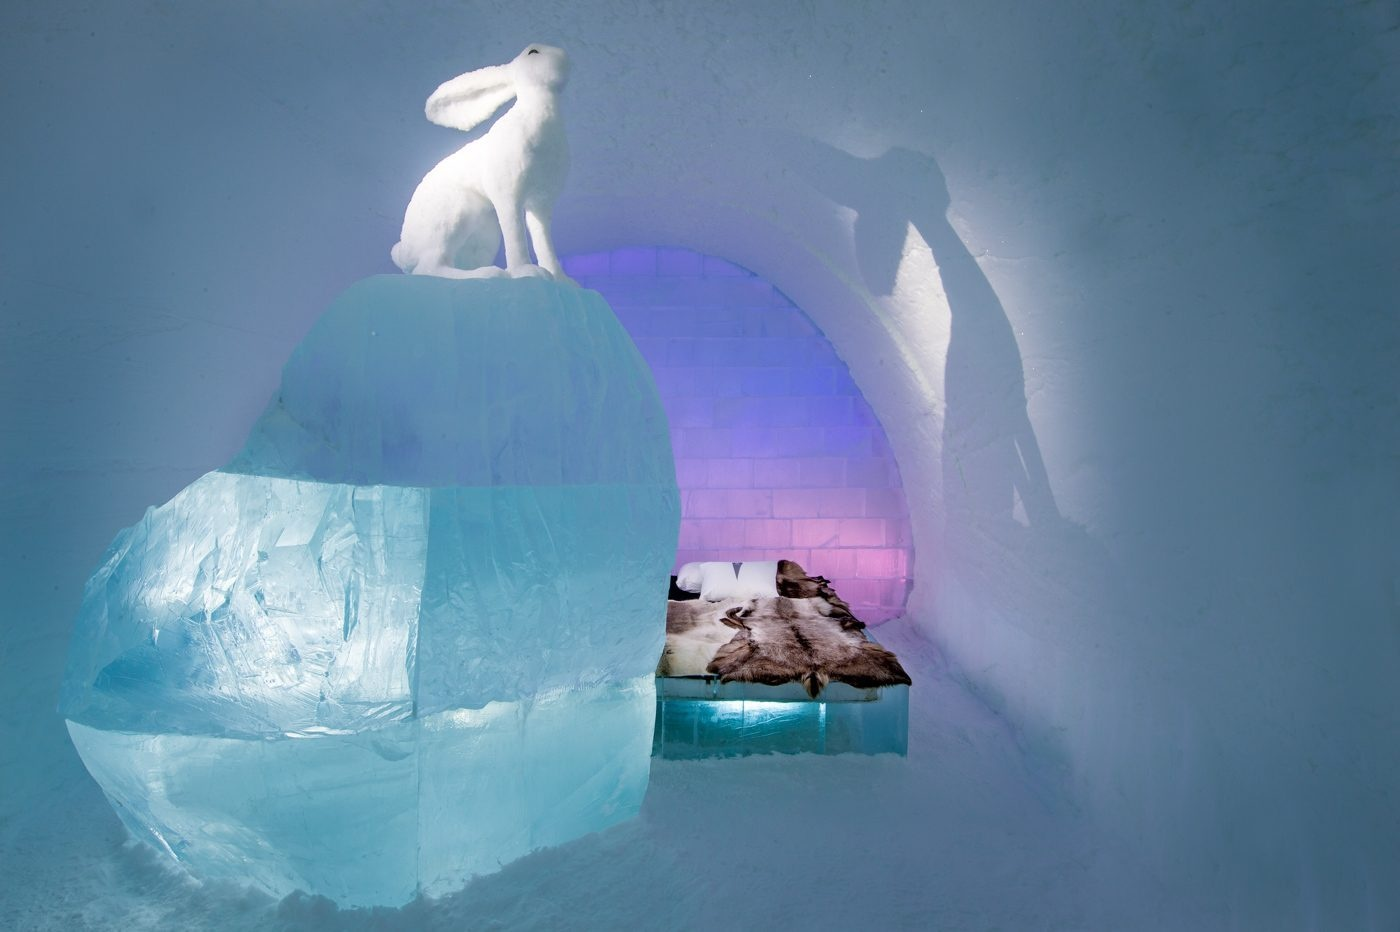 art-suite-follow-the-white-rabbit-icehotel-28-1400x932_01